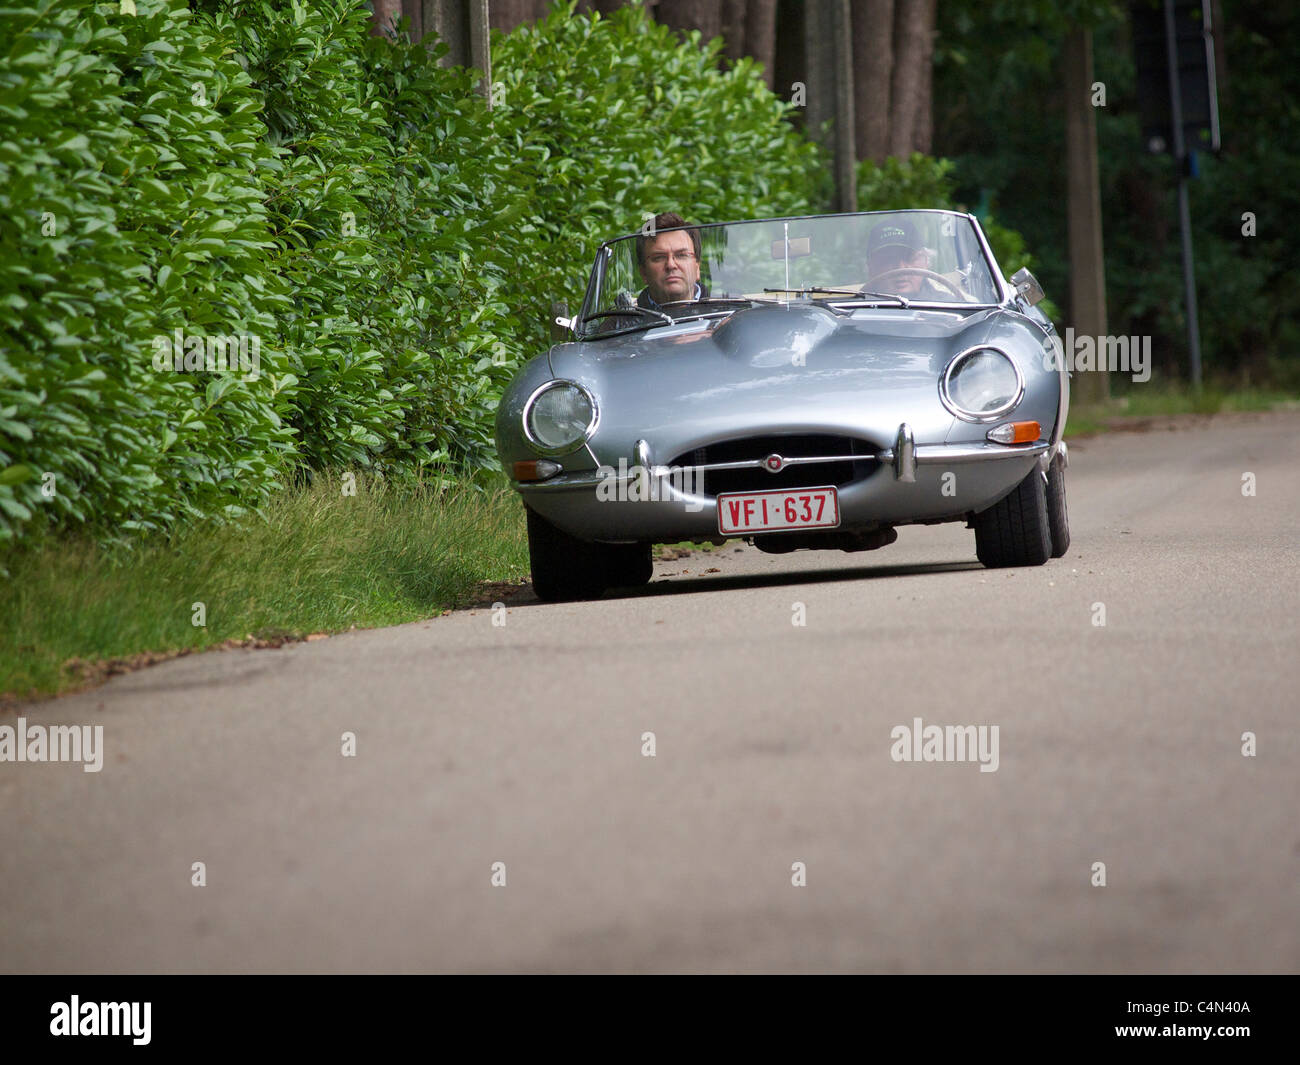 Silver grey Jaguar E-type participating in a classic car rallye in Belgium - Stock Image